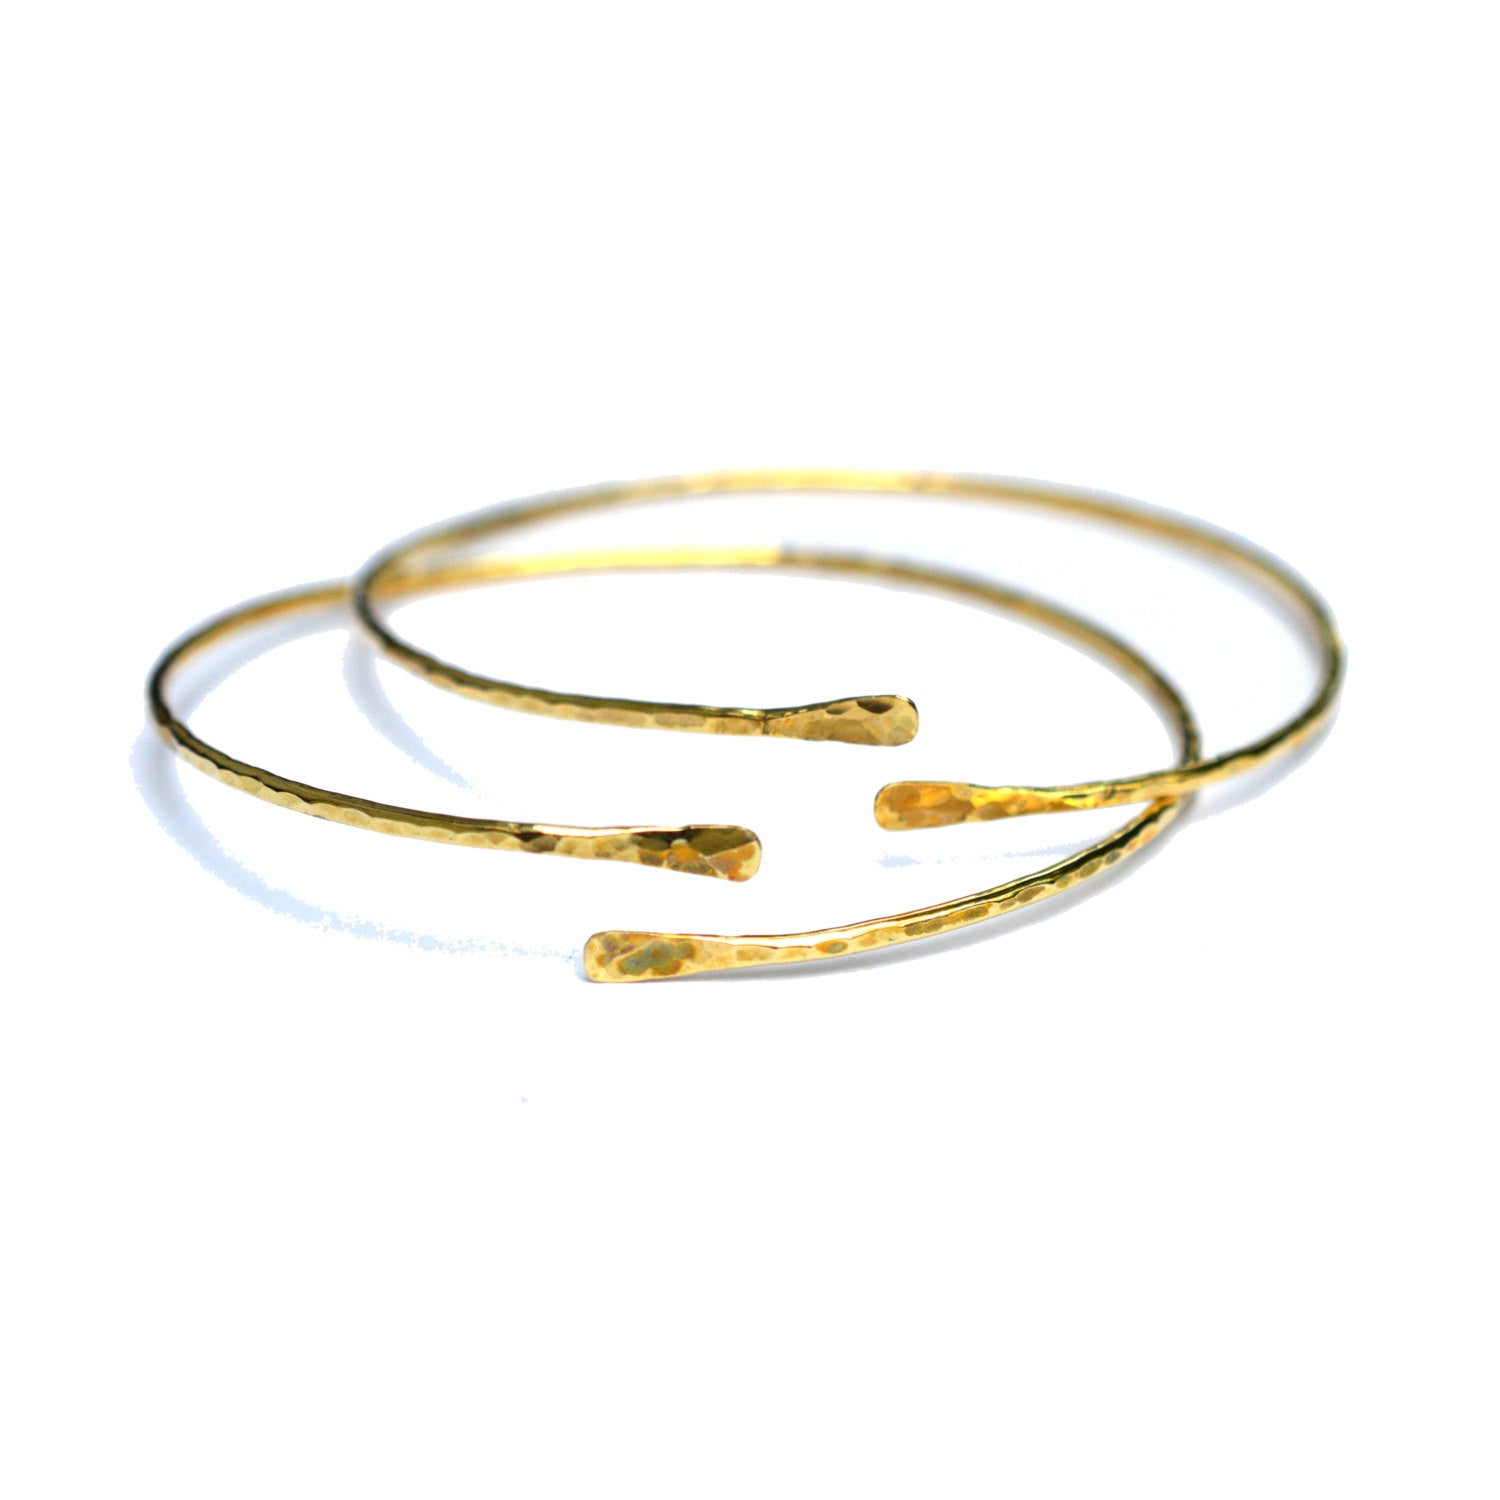 crystal annie uk bangle swarovski bangles products haak silver bronze co jewellery joolsjewellery clear jools